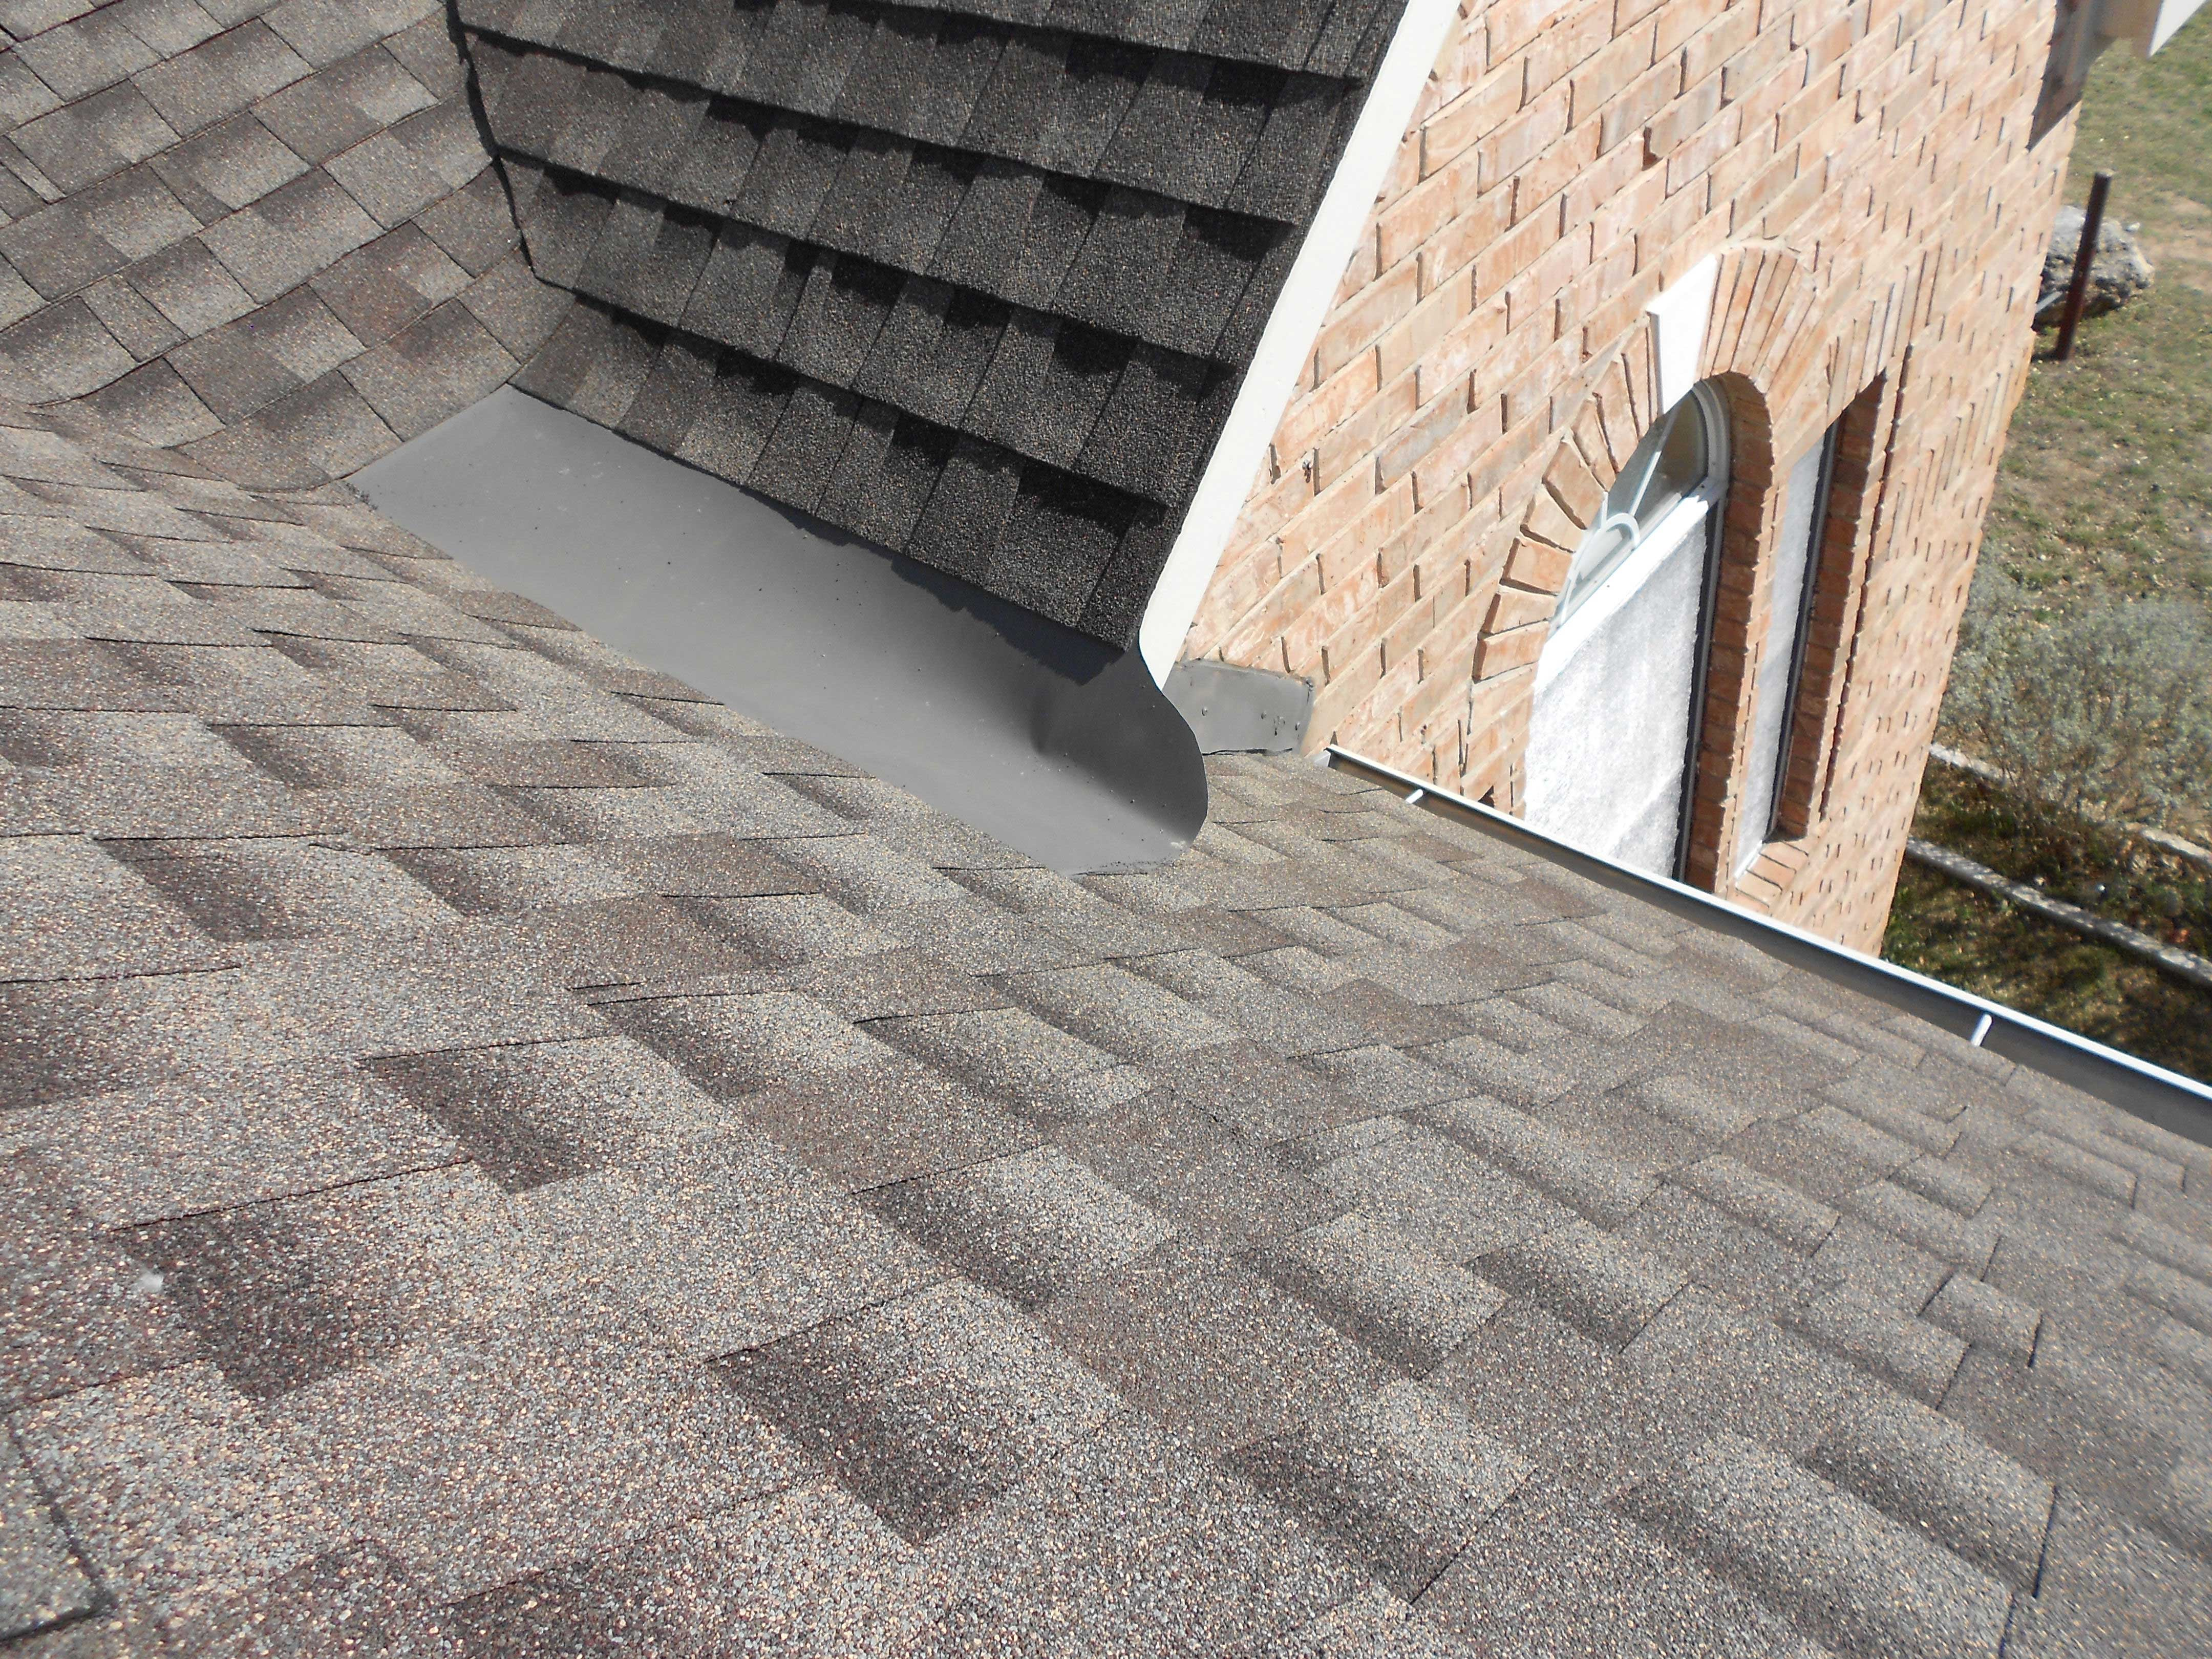 Roof Repair Case Study: Peaks And Valleys